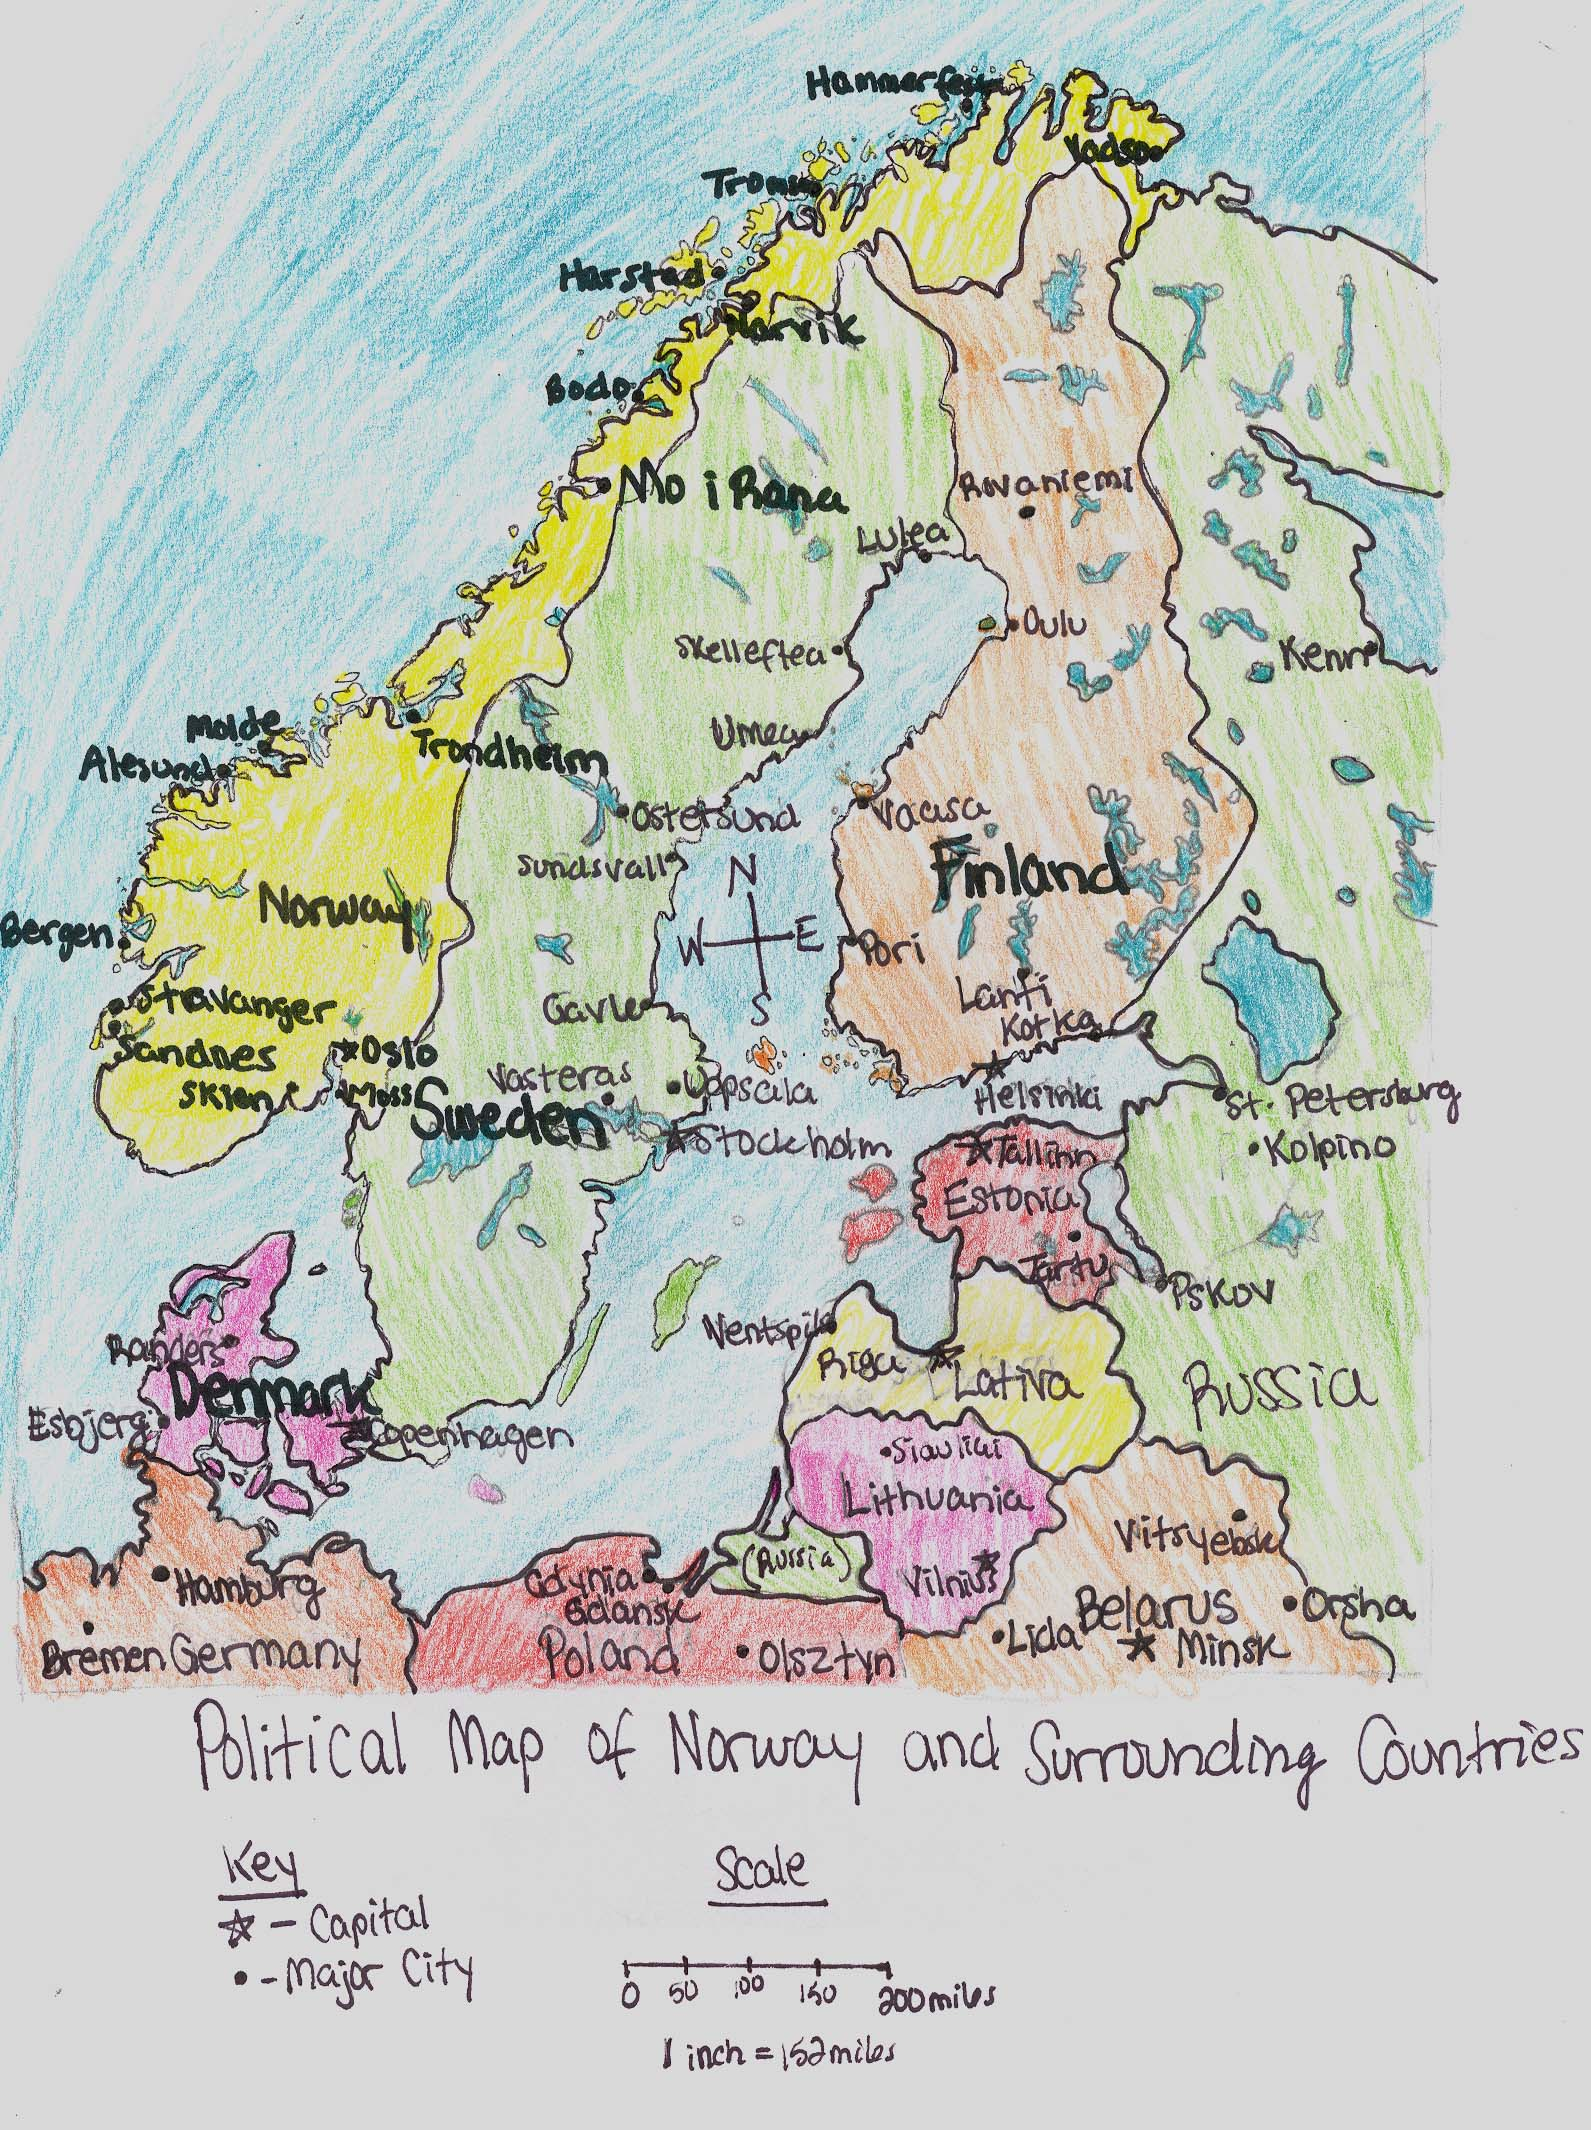 political map of norway and surrounding countries